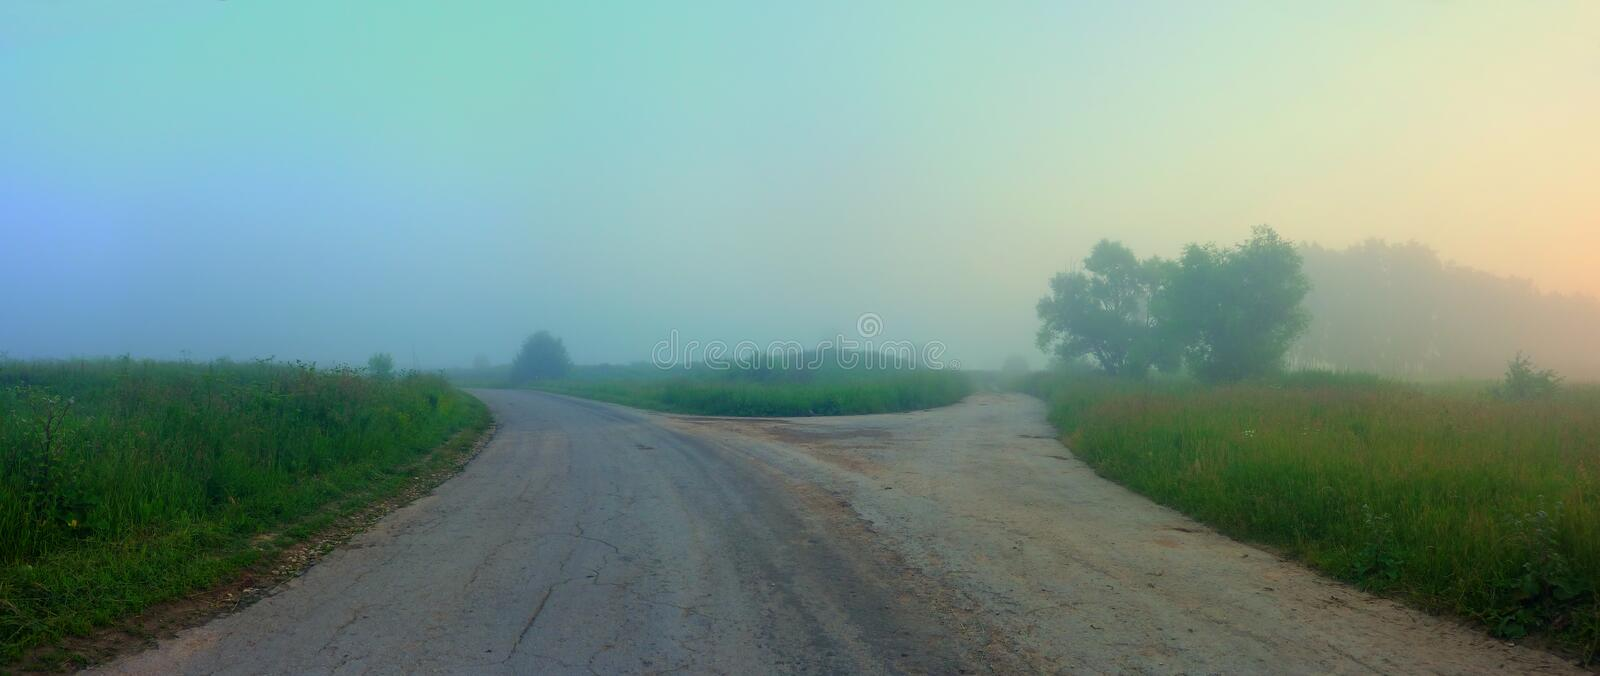 Download Countryside crossroads stock image. Image of gray, rural - 32059709